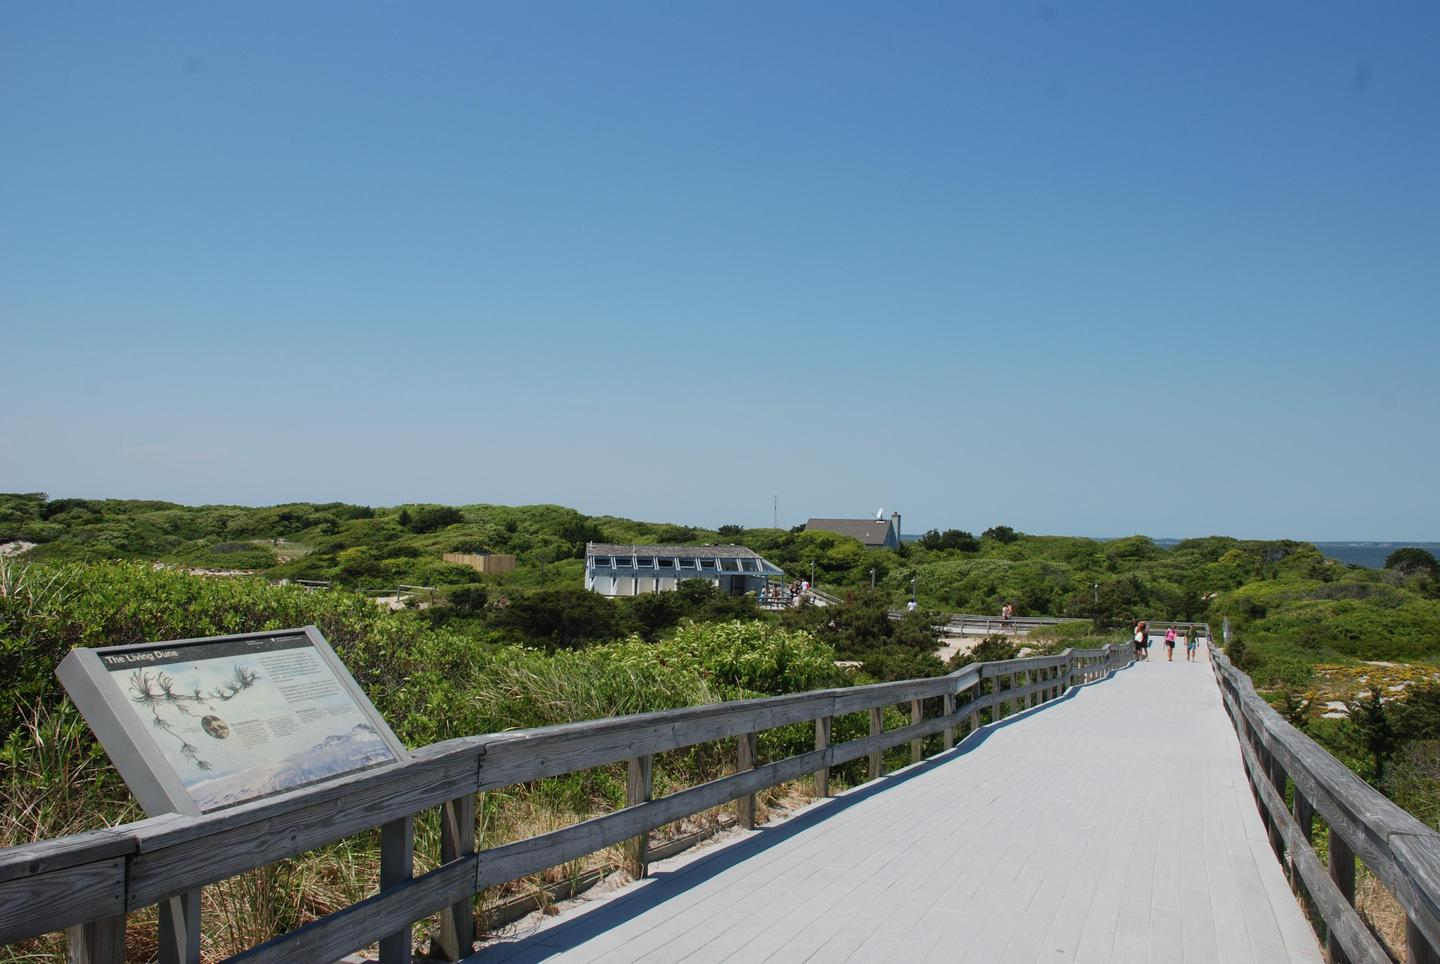 Boardwalk to the ocean beach.Bathrooms, a lifeguarded beach, concessions and a visitor center are available seasonally at Sailors Haven